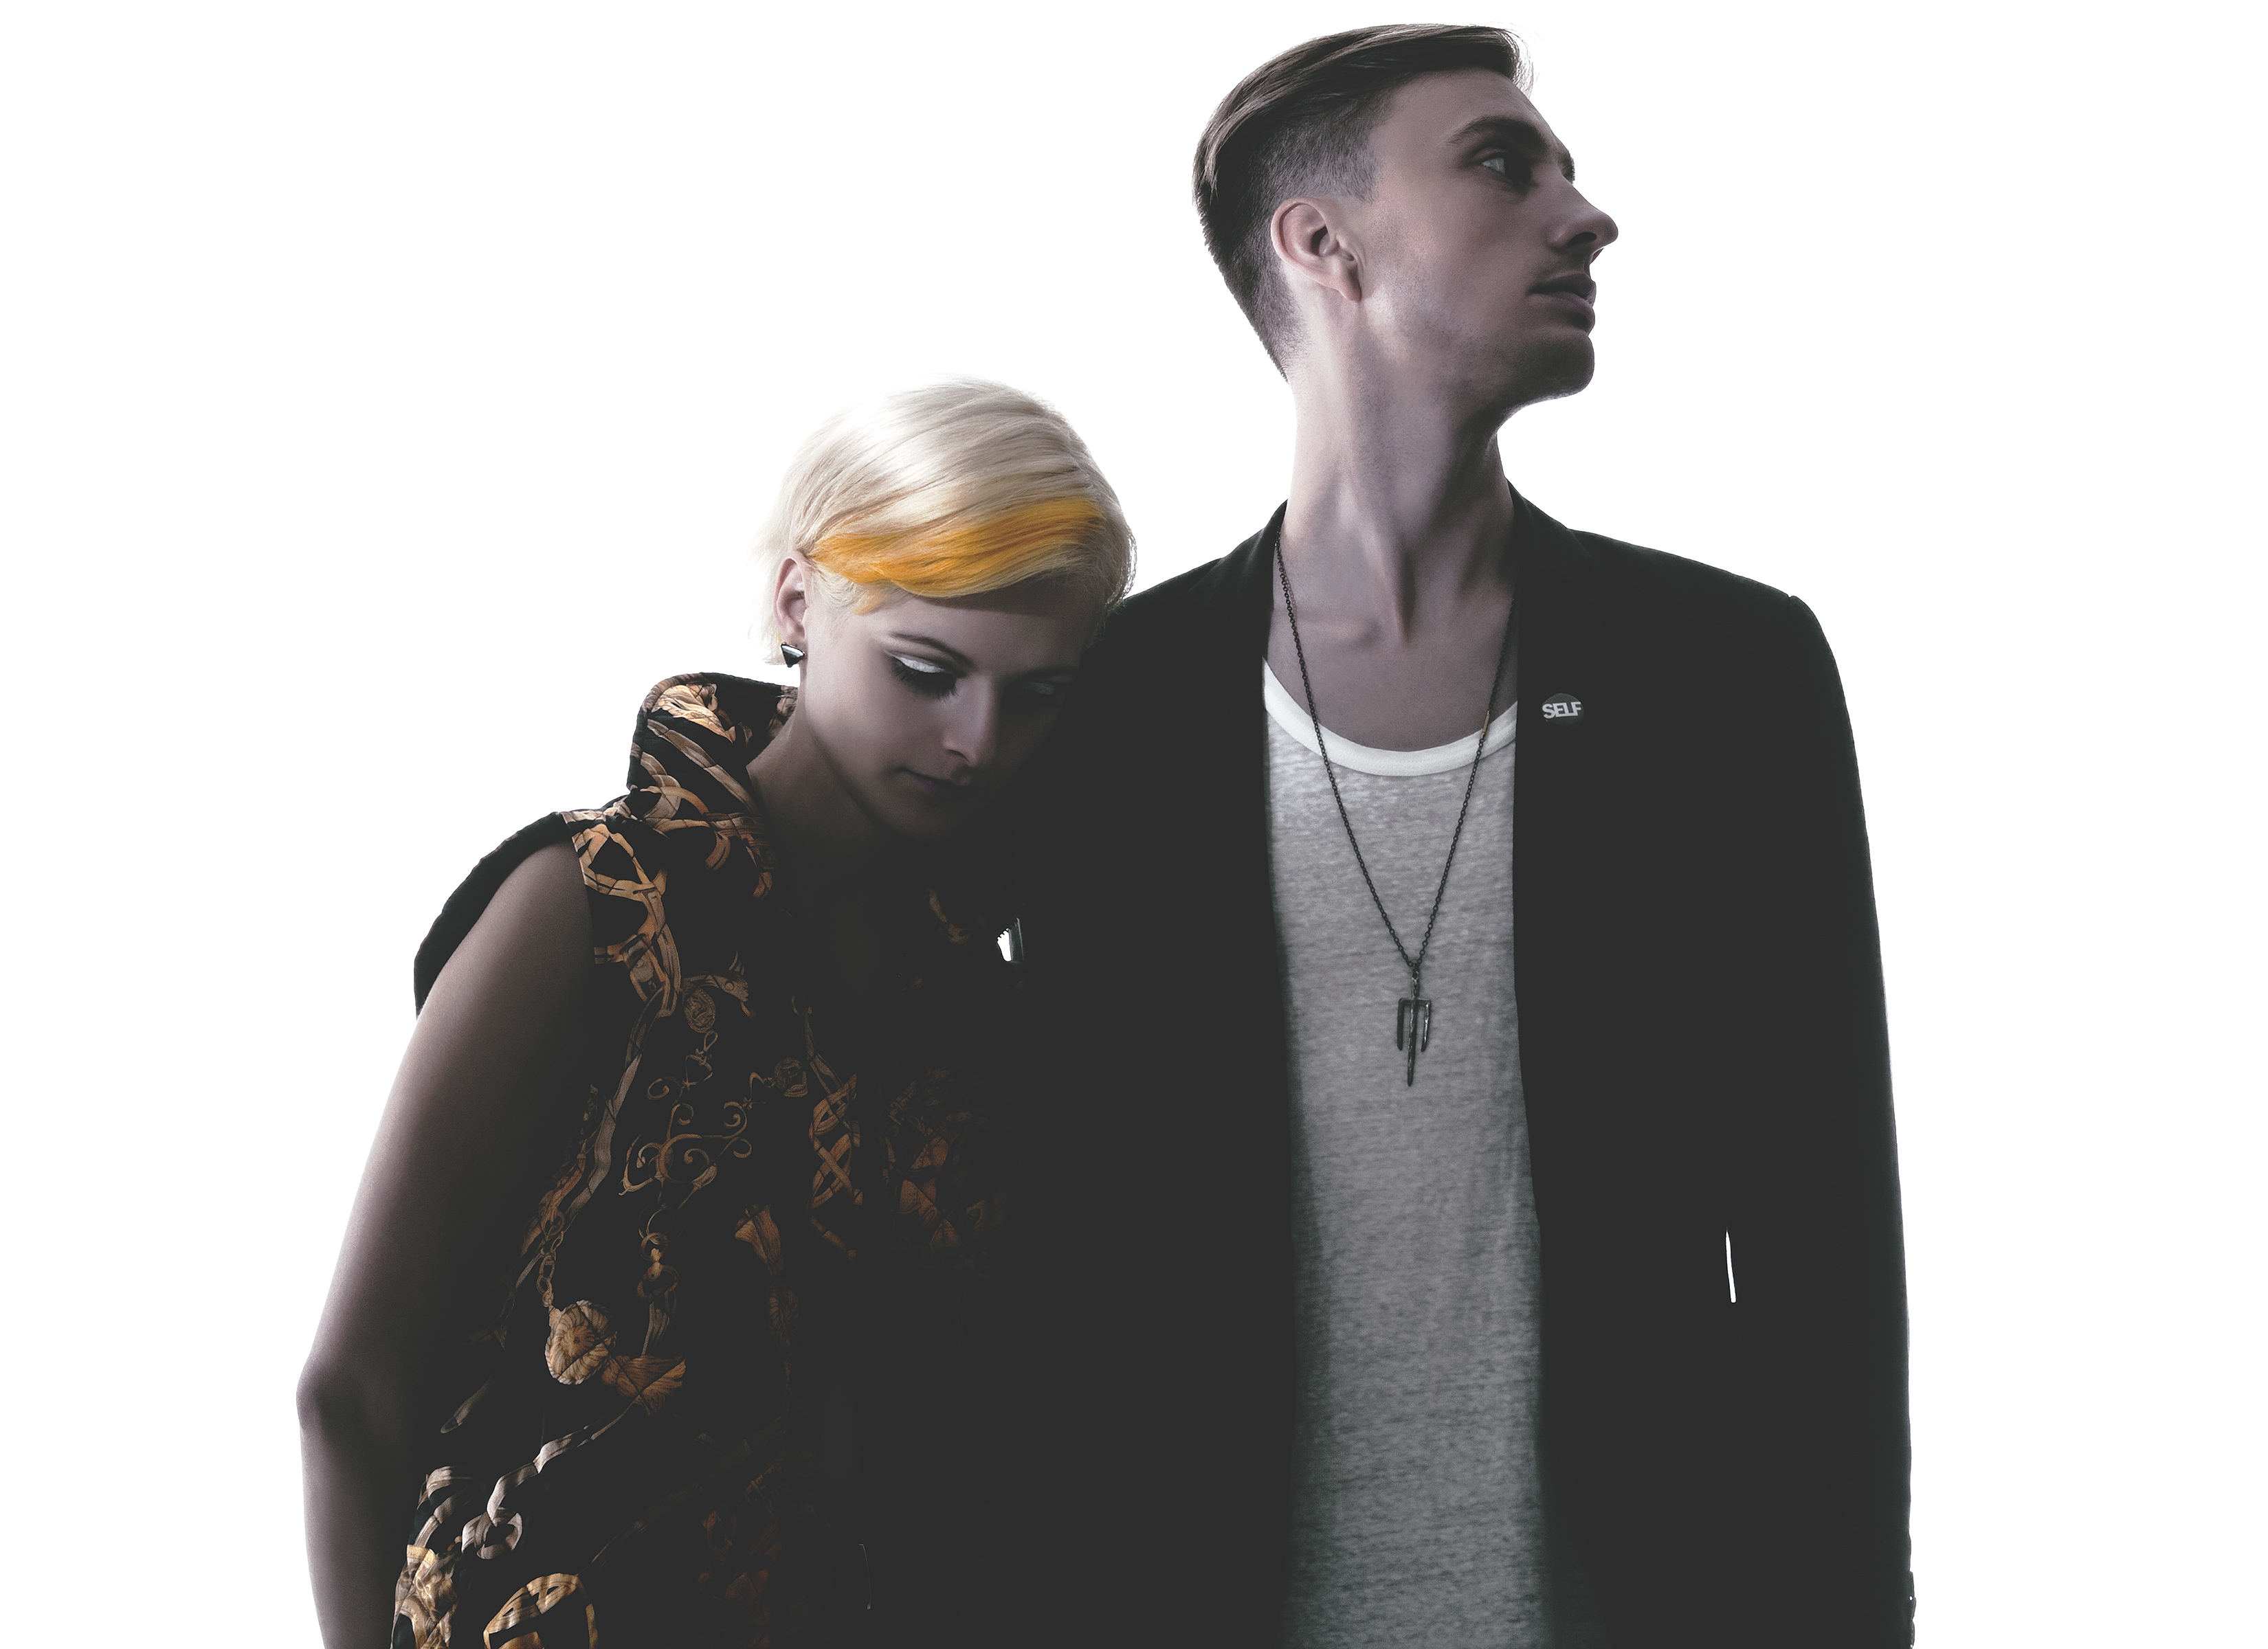 Interview with Laura Smith from Rococode. The band's forthcoming LP 'Don't Worry It Will Be Dark Soon' comes out 2/28